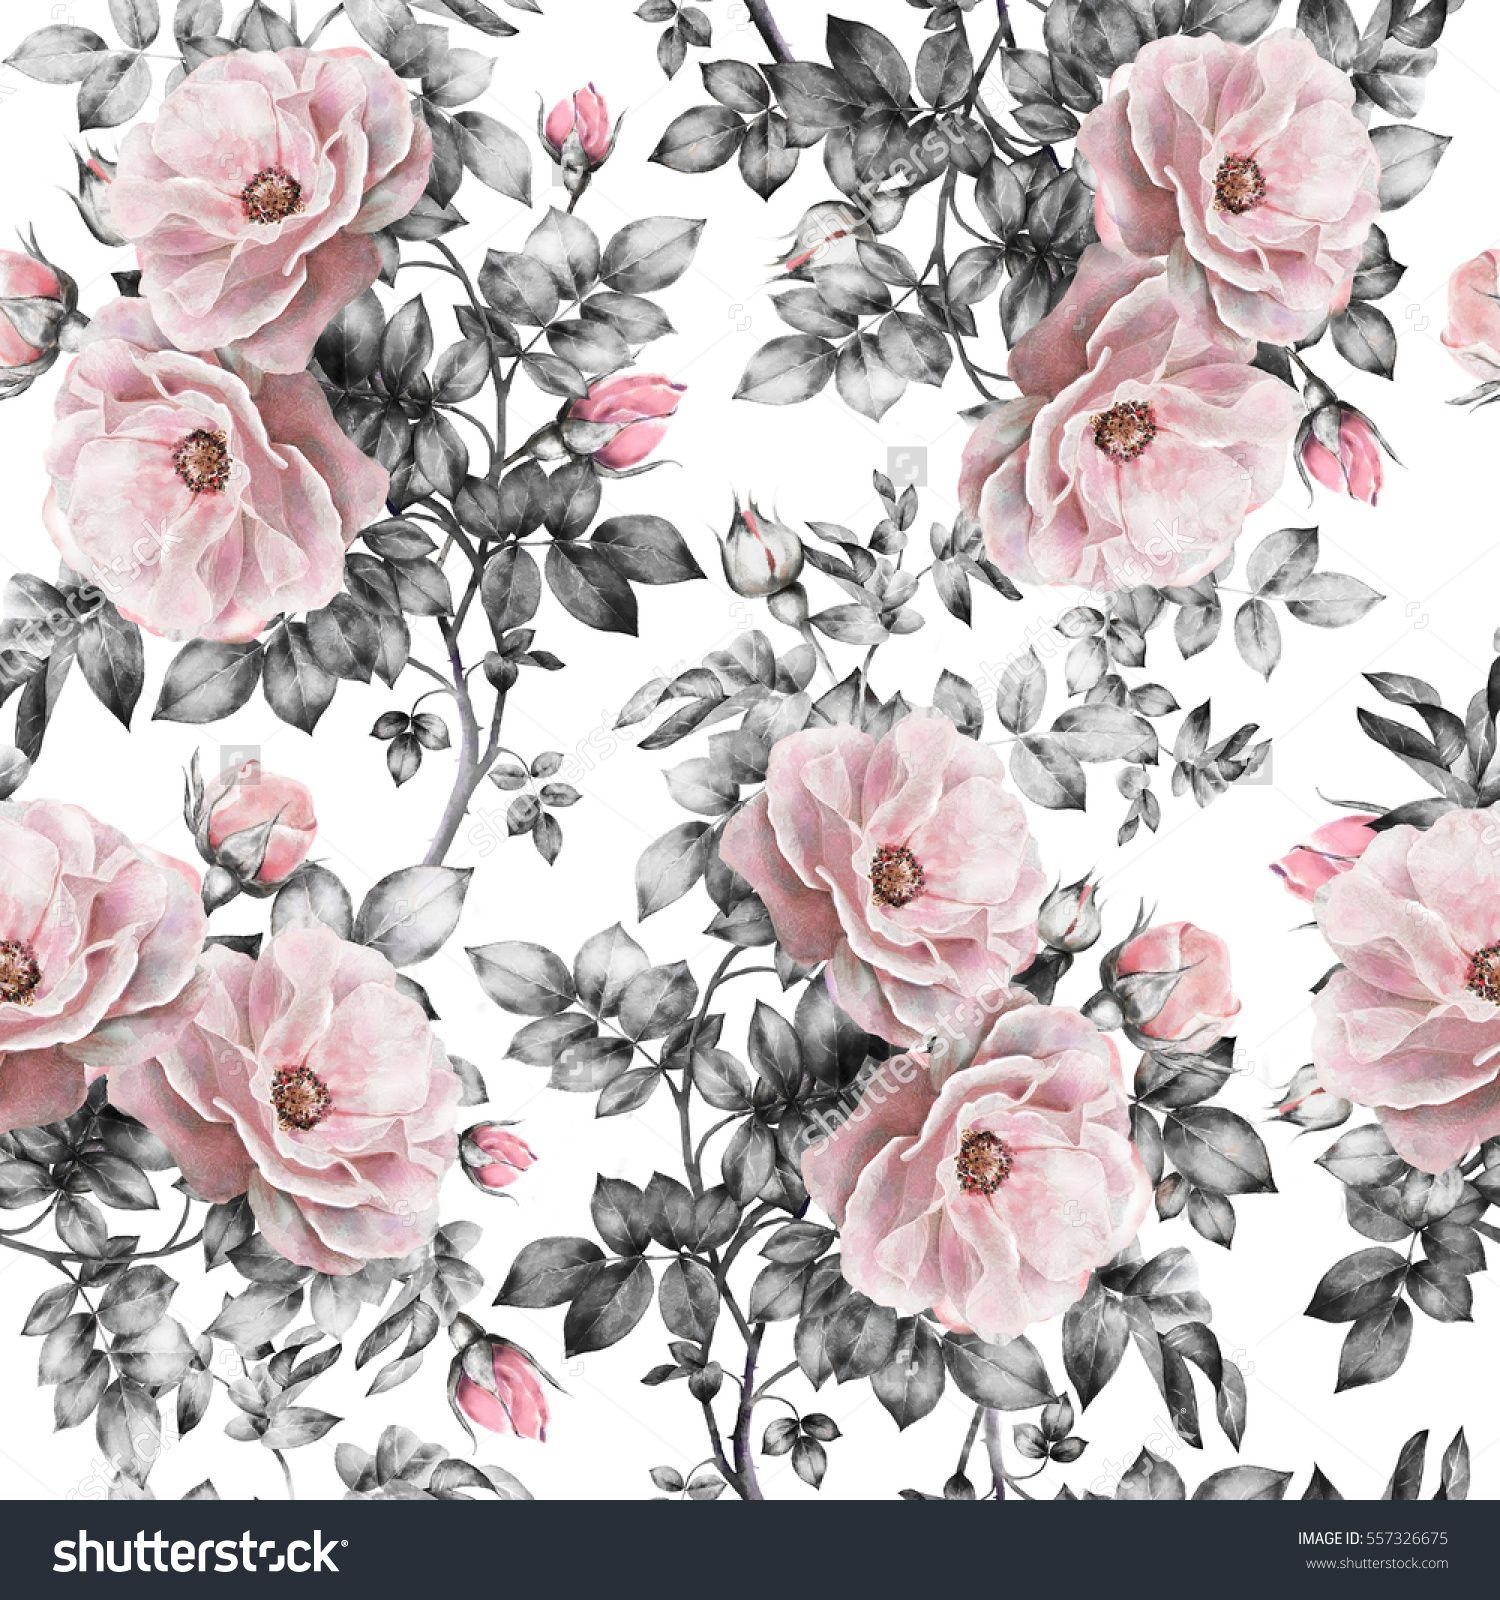 Seamless pattern with pink flowers and leaves on white background